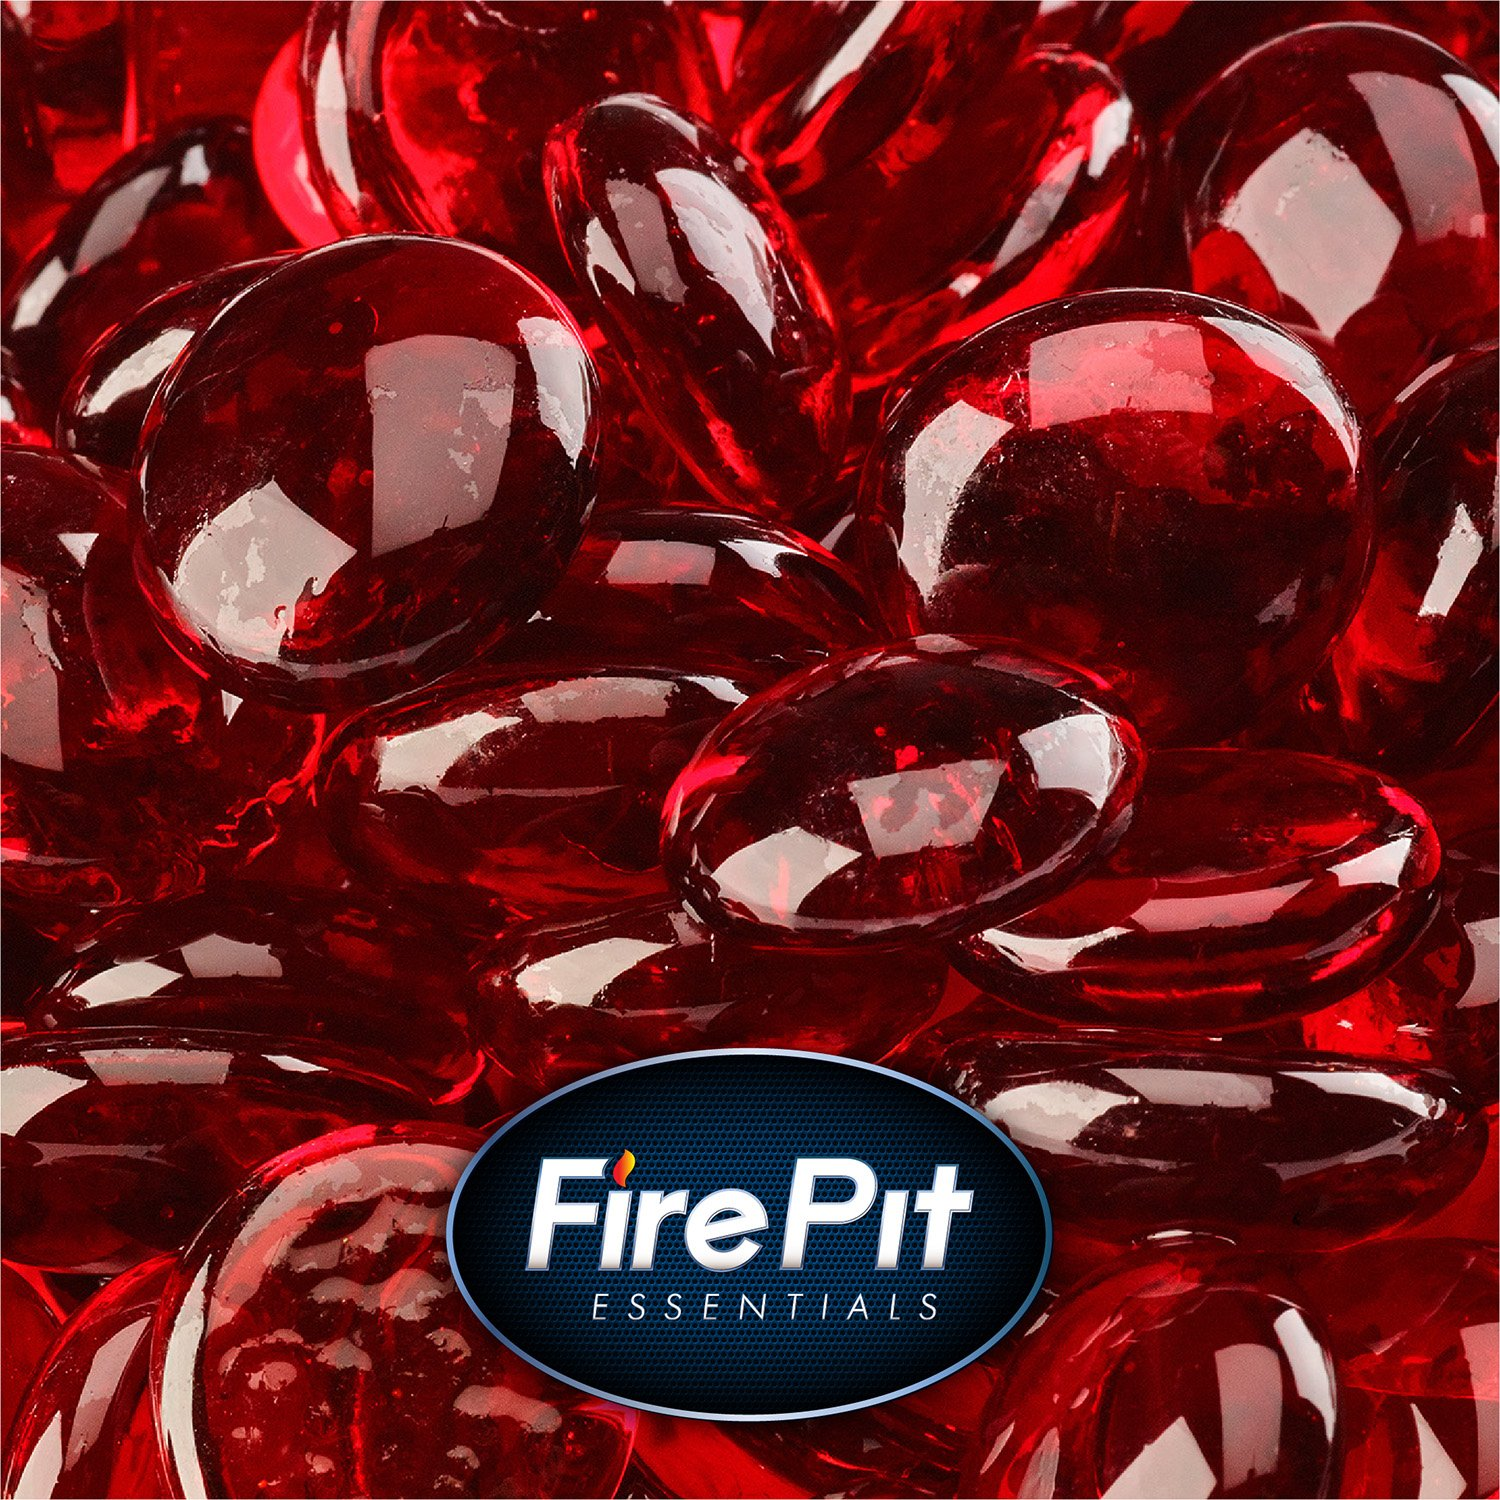 1/2 Fire Glass Beads Indoor Outdoor Fire Pits Fireplace 10 Pounds (Ruby) Fire Pit Essentials